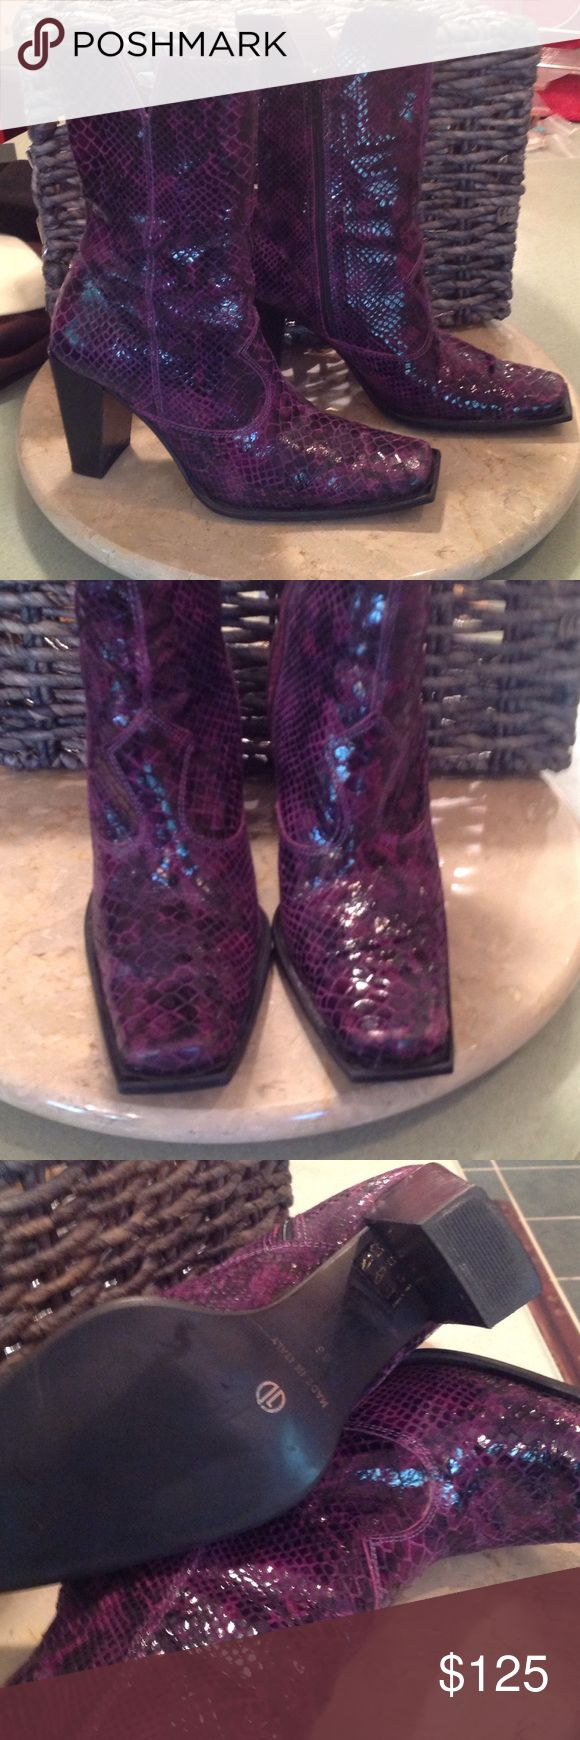 Vintage Snake skin boots These were from Las Vegas in the late 80s. They are in perfect shape. No scuffs on boots or heels. Very little wear on bottoms. They are purple and black. These are fab!! These are sexy meets western! ❤️️👢❤️️ Bee Fly   Paris Shoes Heeled Boots